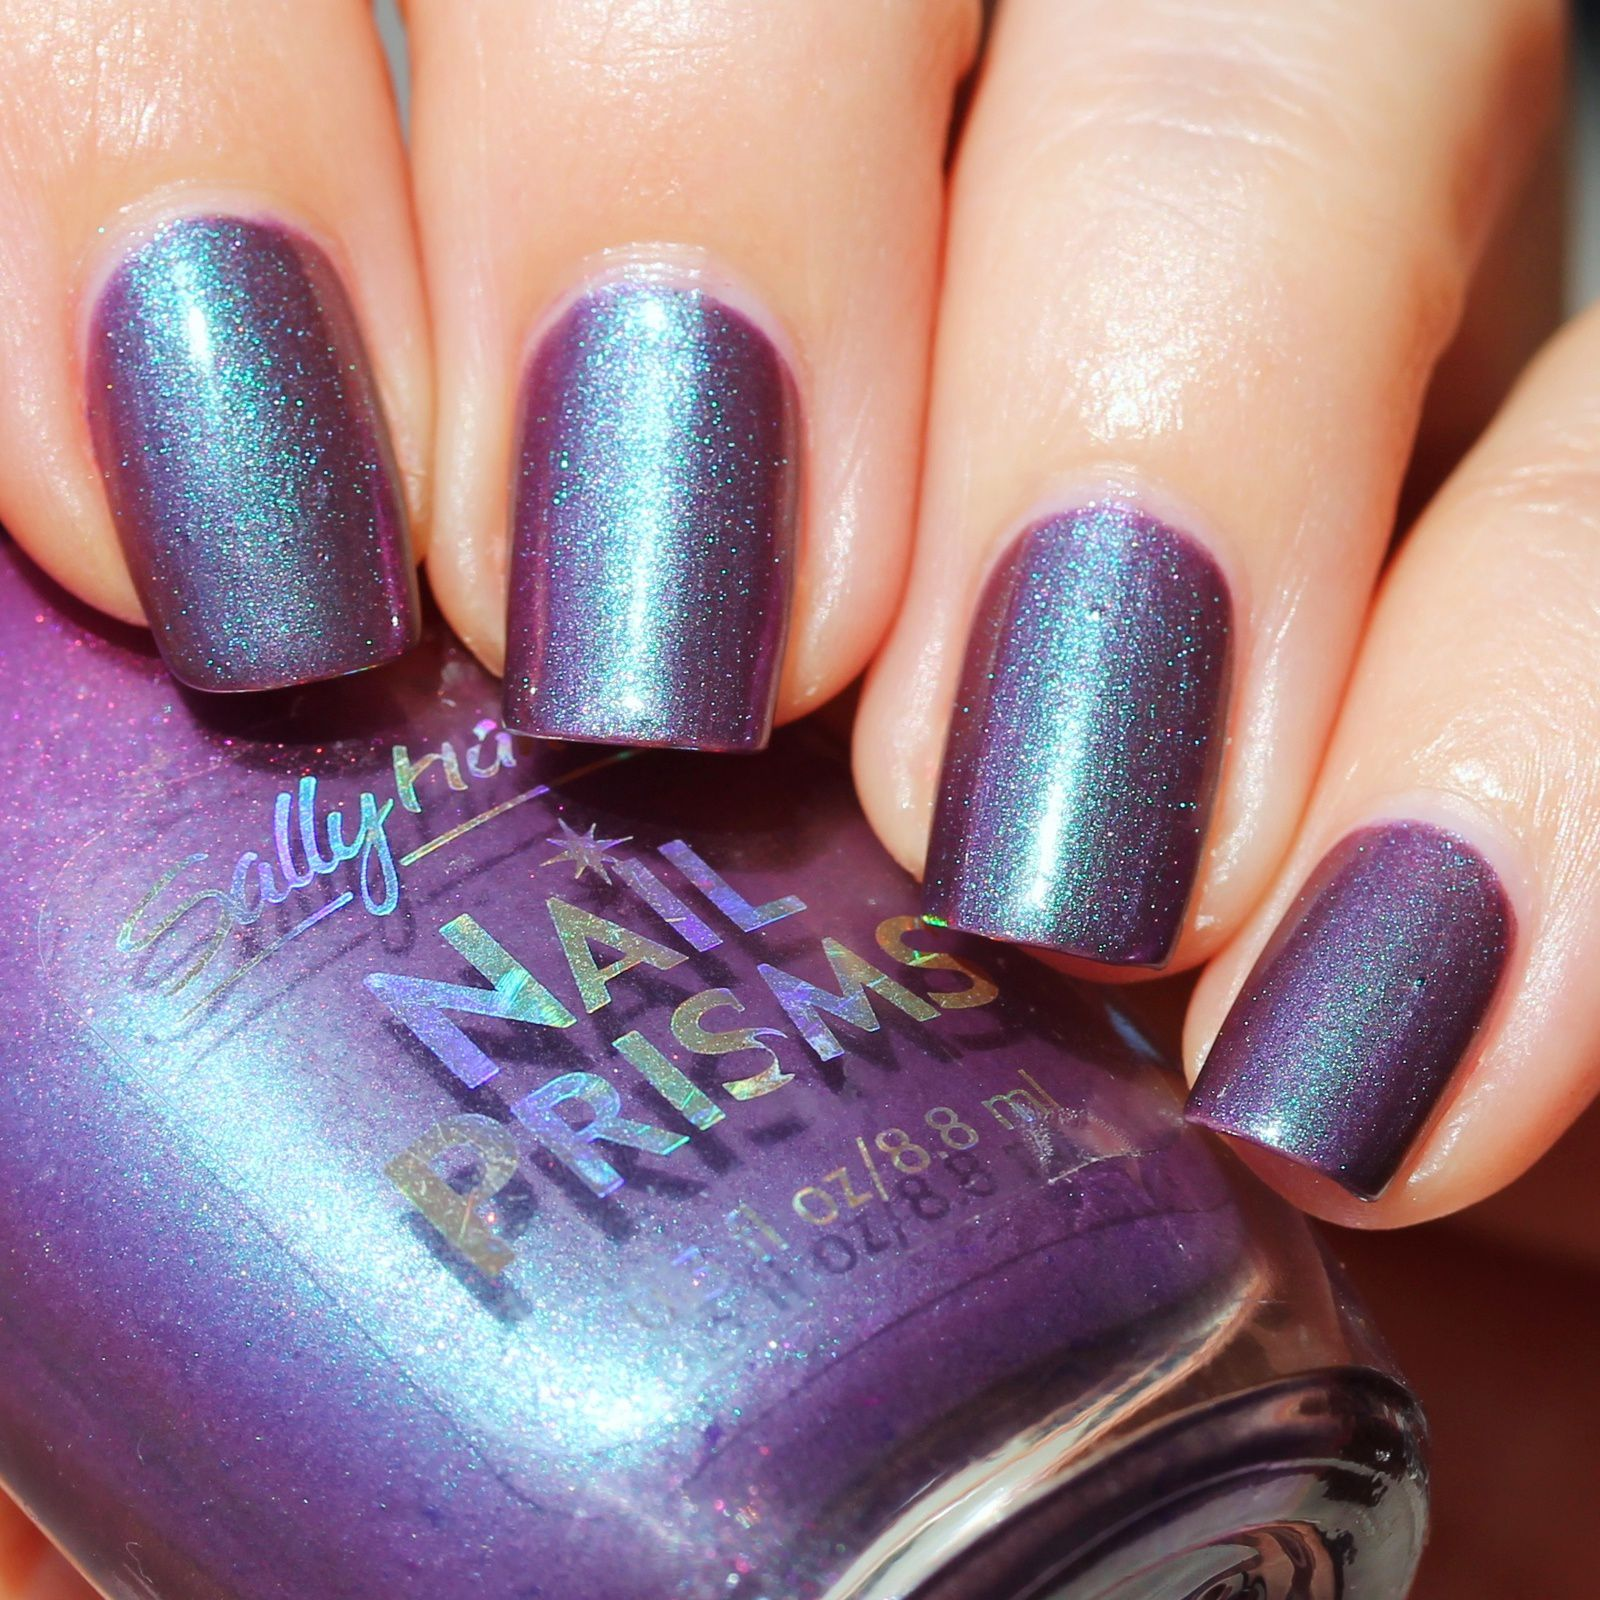 Sally Hansen Complete Care 4-in-1 Extra Moisturizing Nail Treatment / Sally Hansen Platinum Plum / HK Girl Top Coat